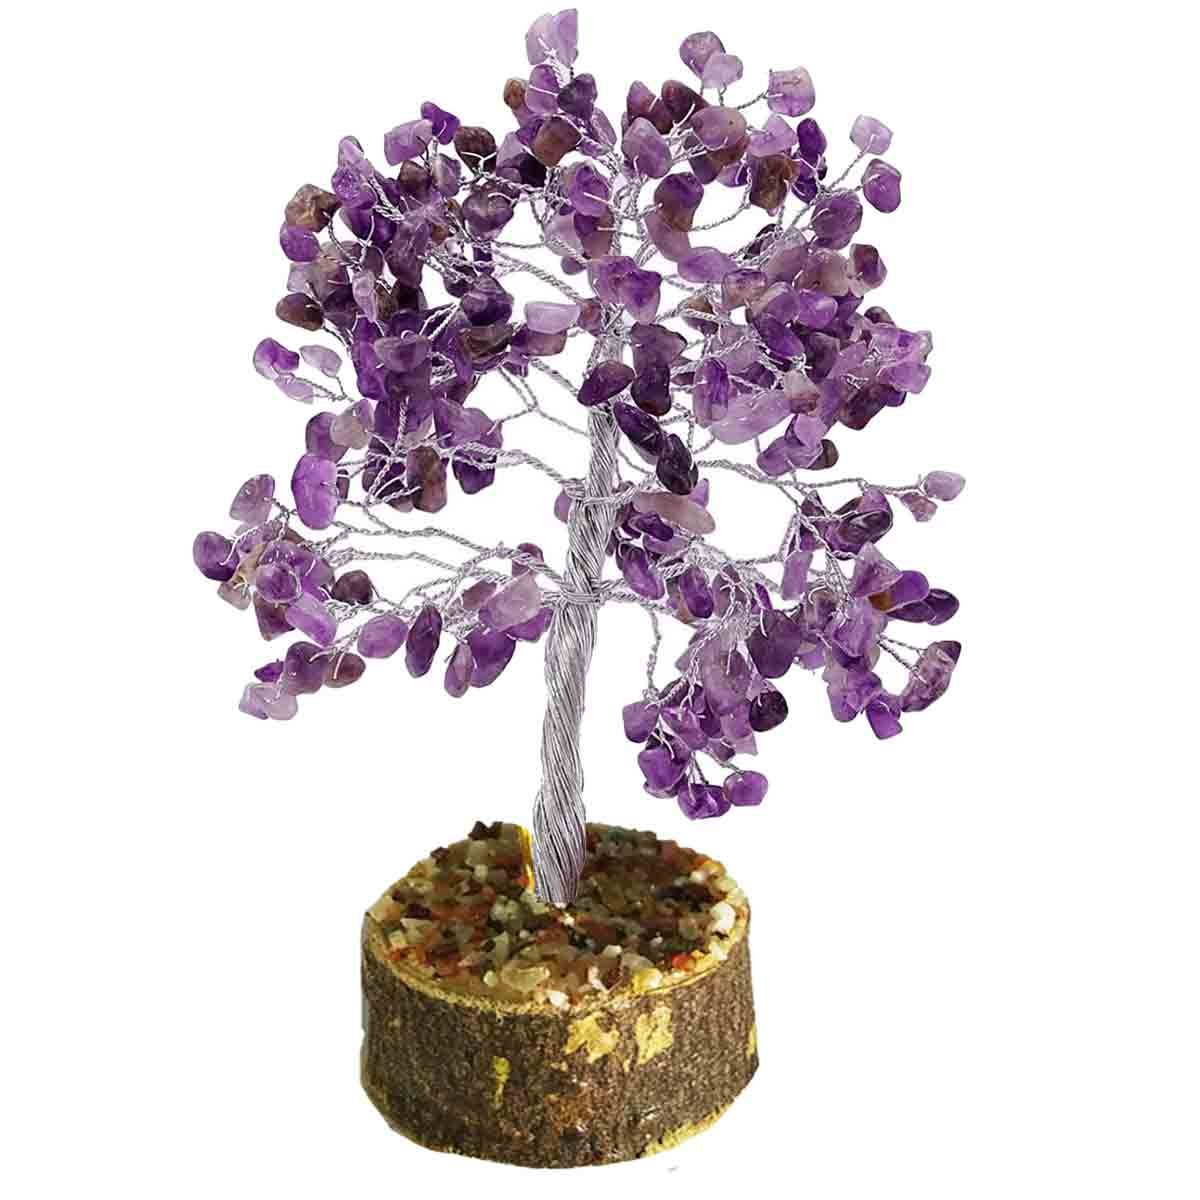 Amethyst Stone Tree Healing Crystals Stones Reiki Tree Reiki Spritual Gift With Gift PouchBy Mangalam House Mangalam Reiki